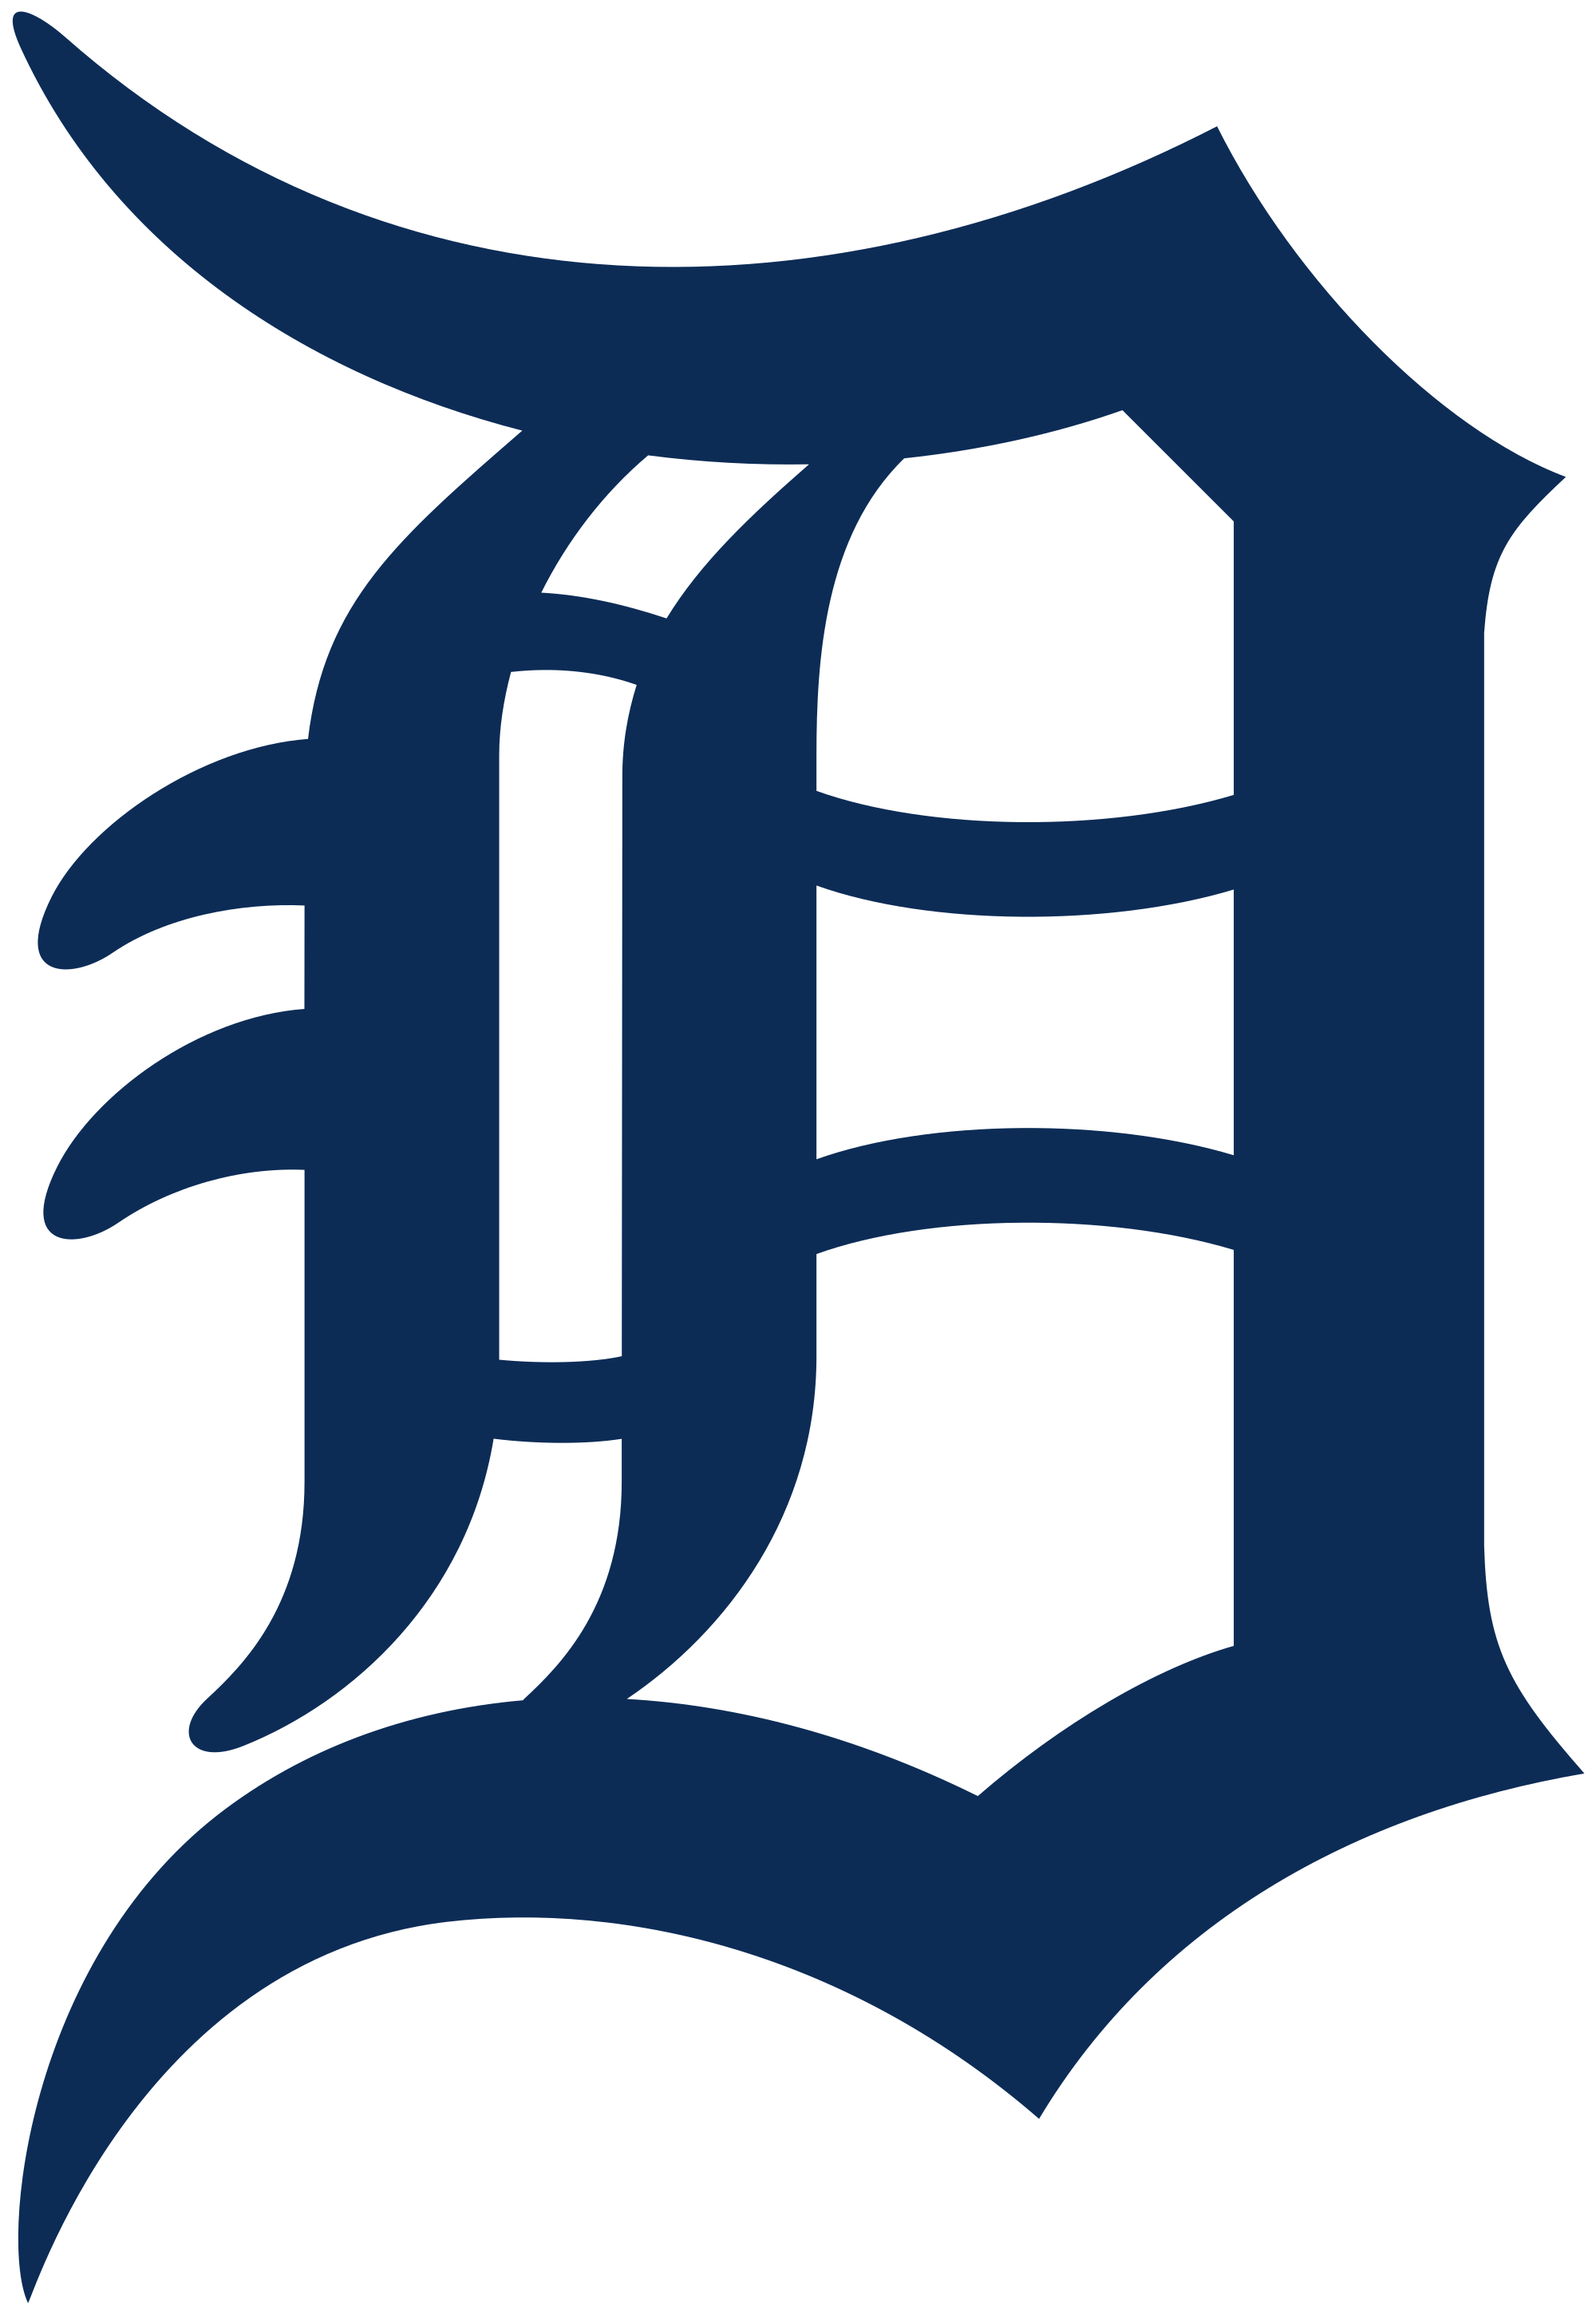 Tiger baseball clipart clipart library library File:Detroit Tigers logo.svg - Wikimedia Commons clipart library library